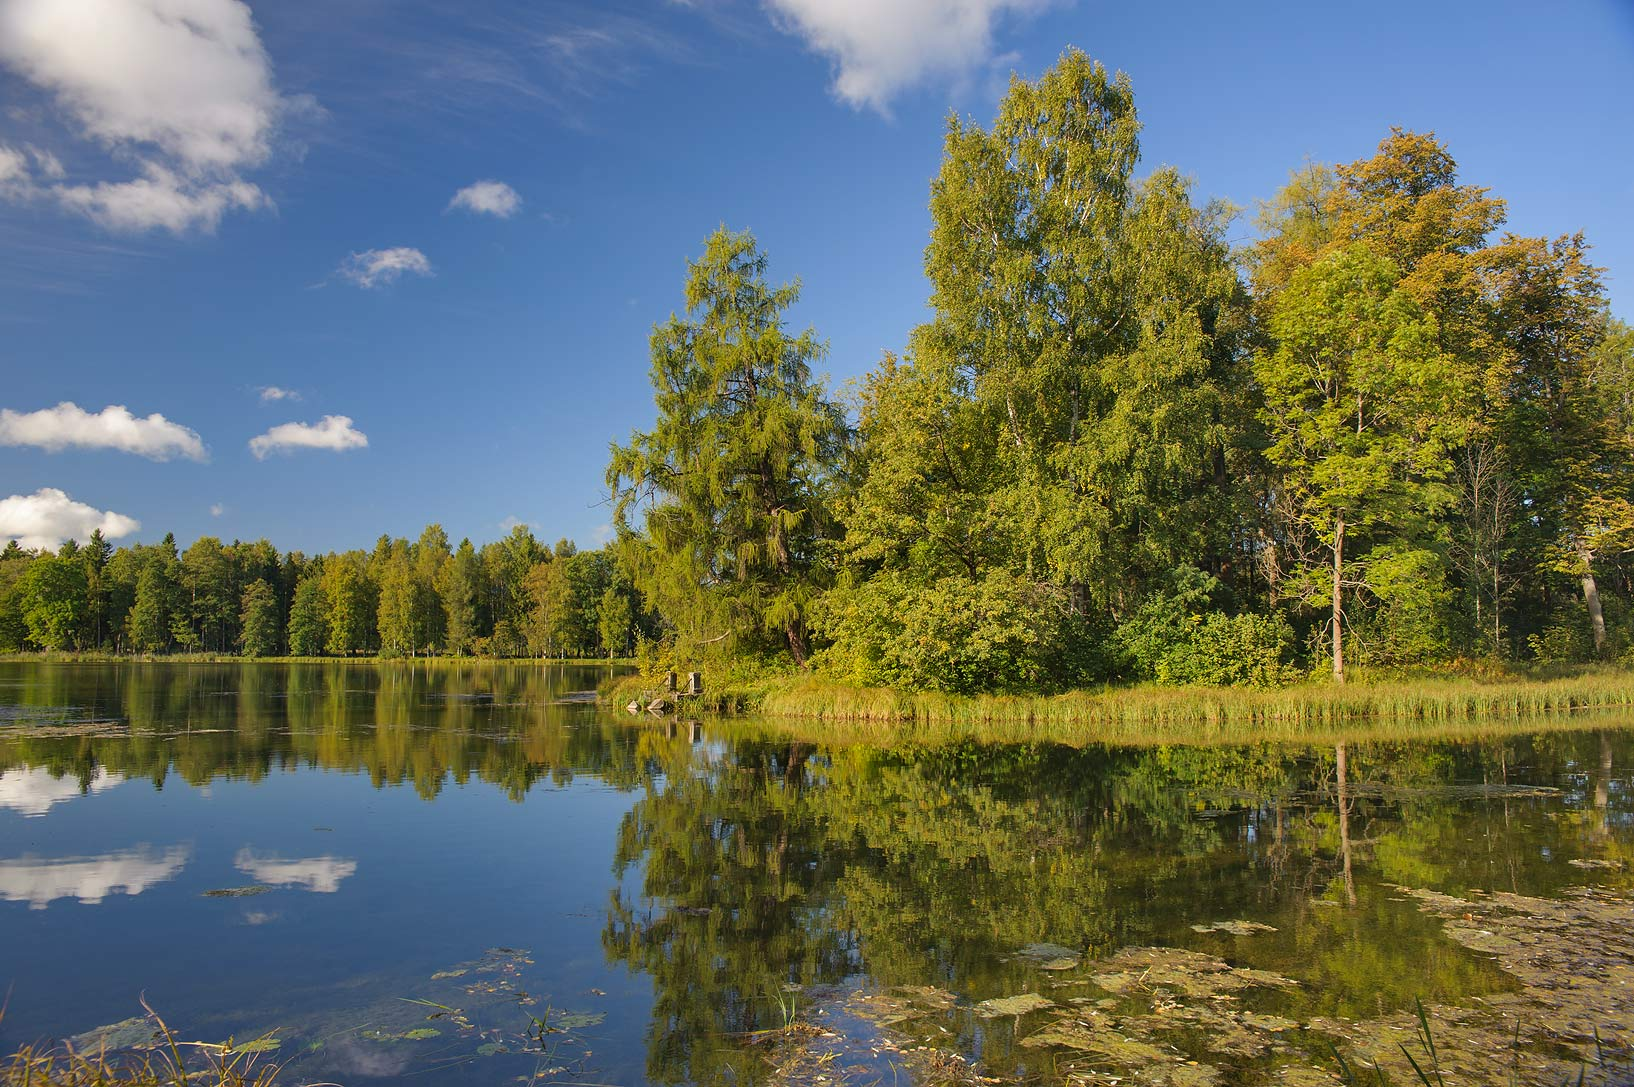 Fir Island in Beloe Lake in Gatchina Park. Gatchina, a suburb of St.Petersburg, Russia